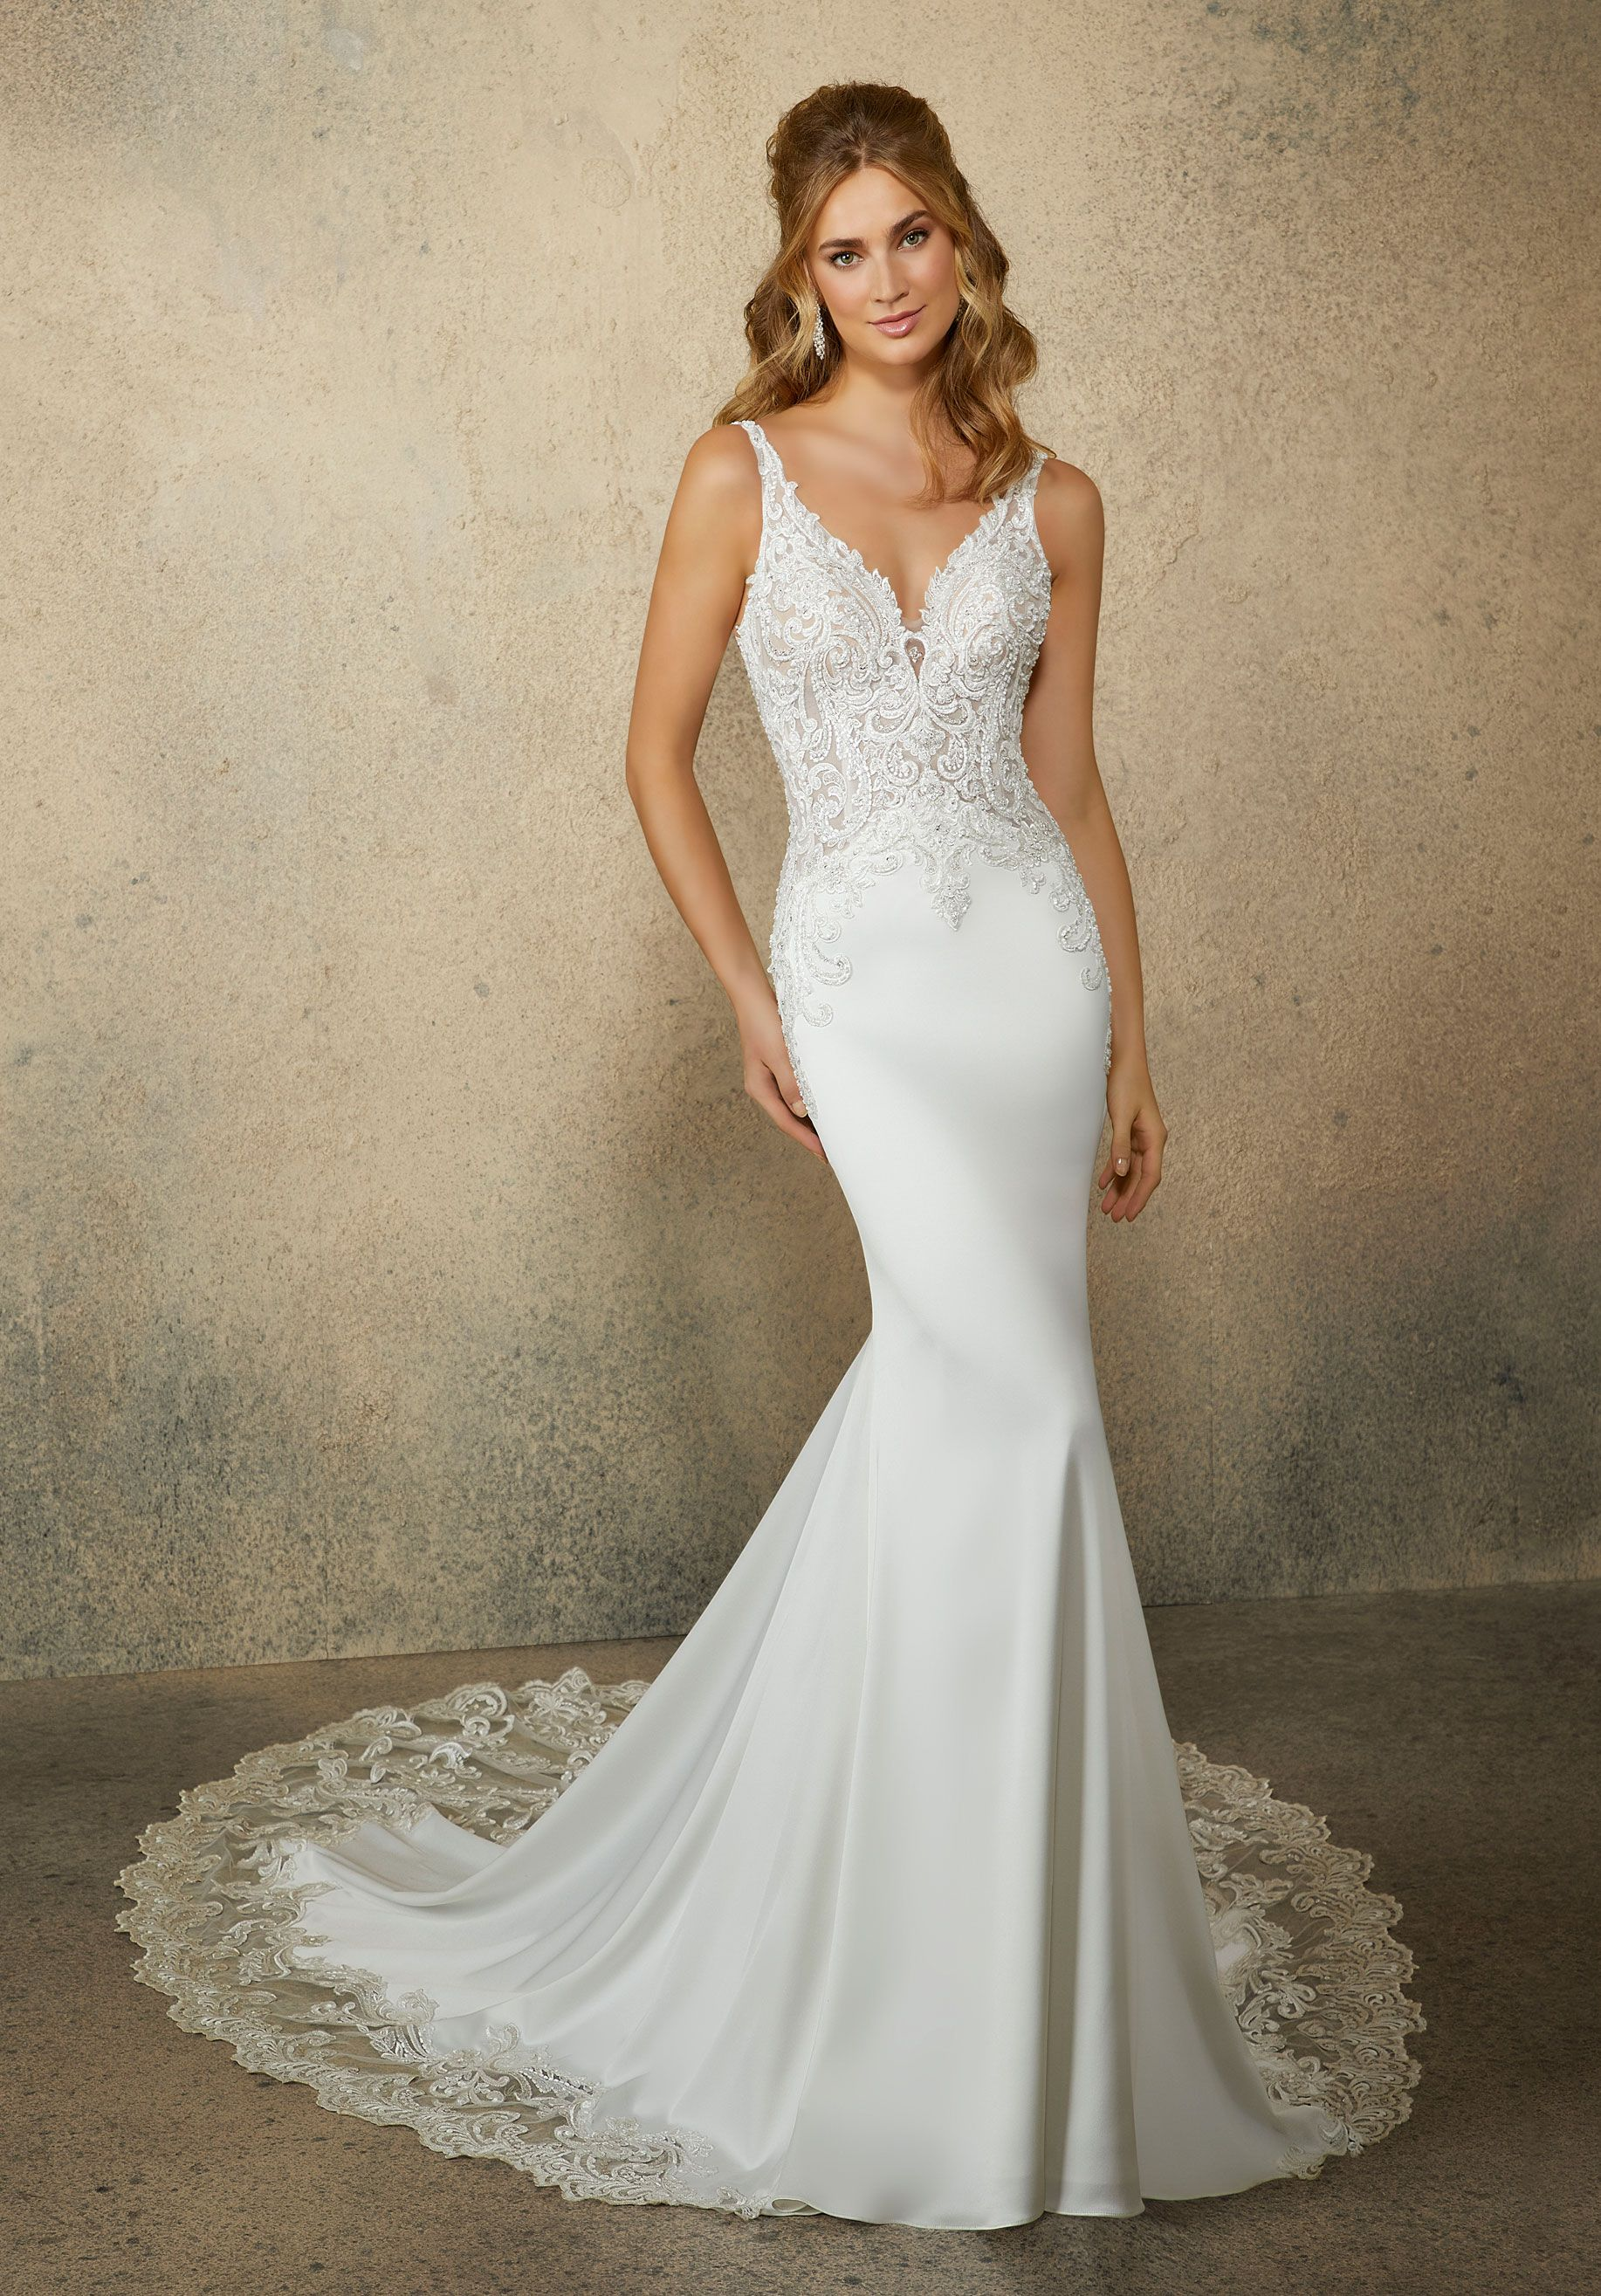 This Gown Features Pearl And Crystal Embroidery On A Net Bodice